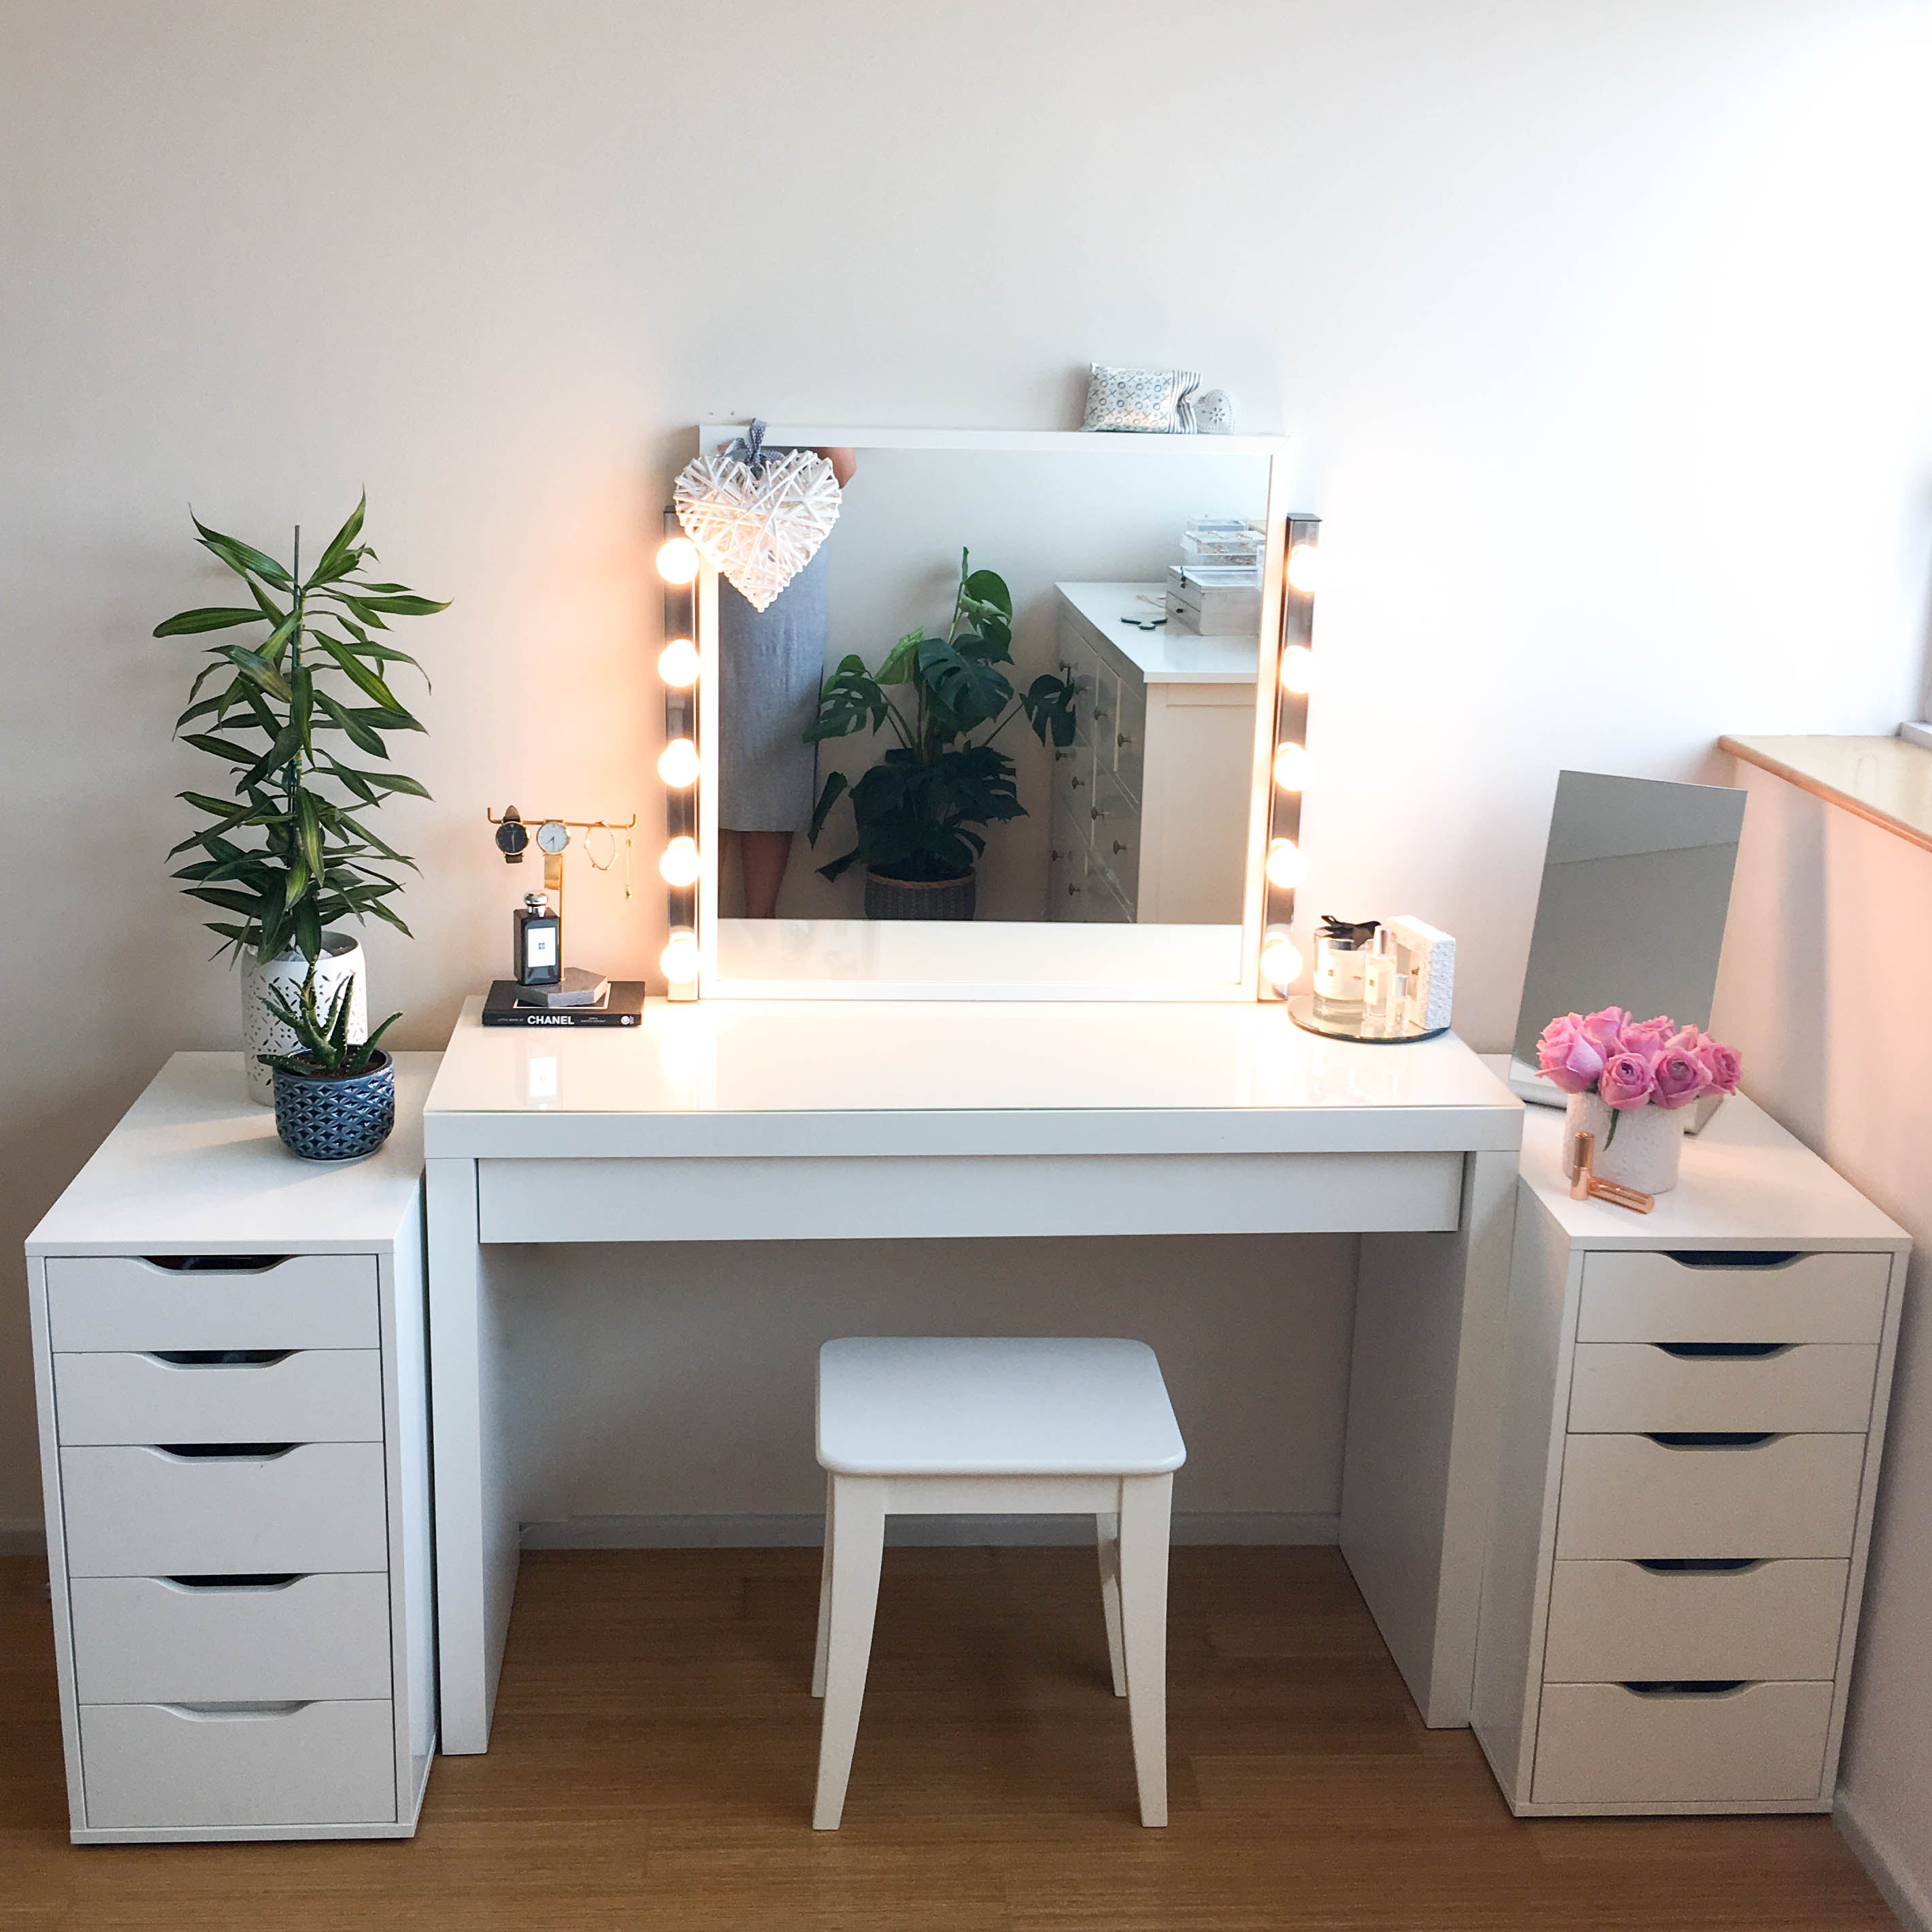 glass dressing and cabinet desk set models furniture vanities stool mirror bedroom large with full table of bathroom tables vanity mirrored size makeup floor white